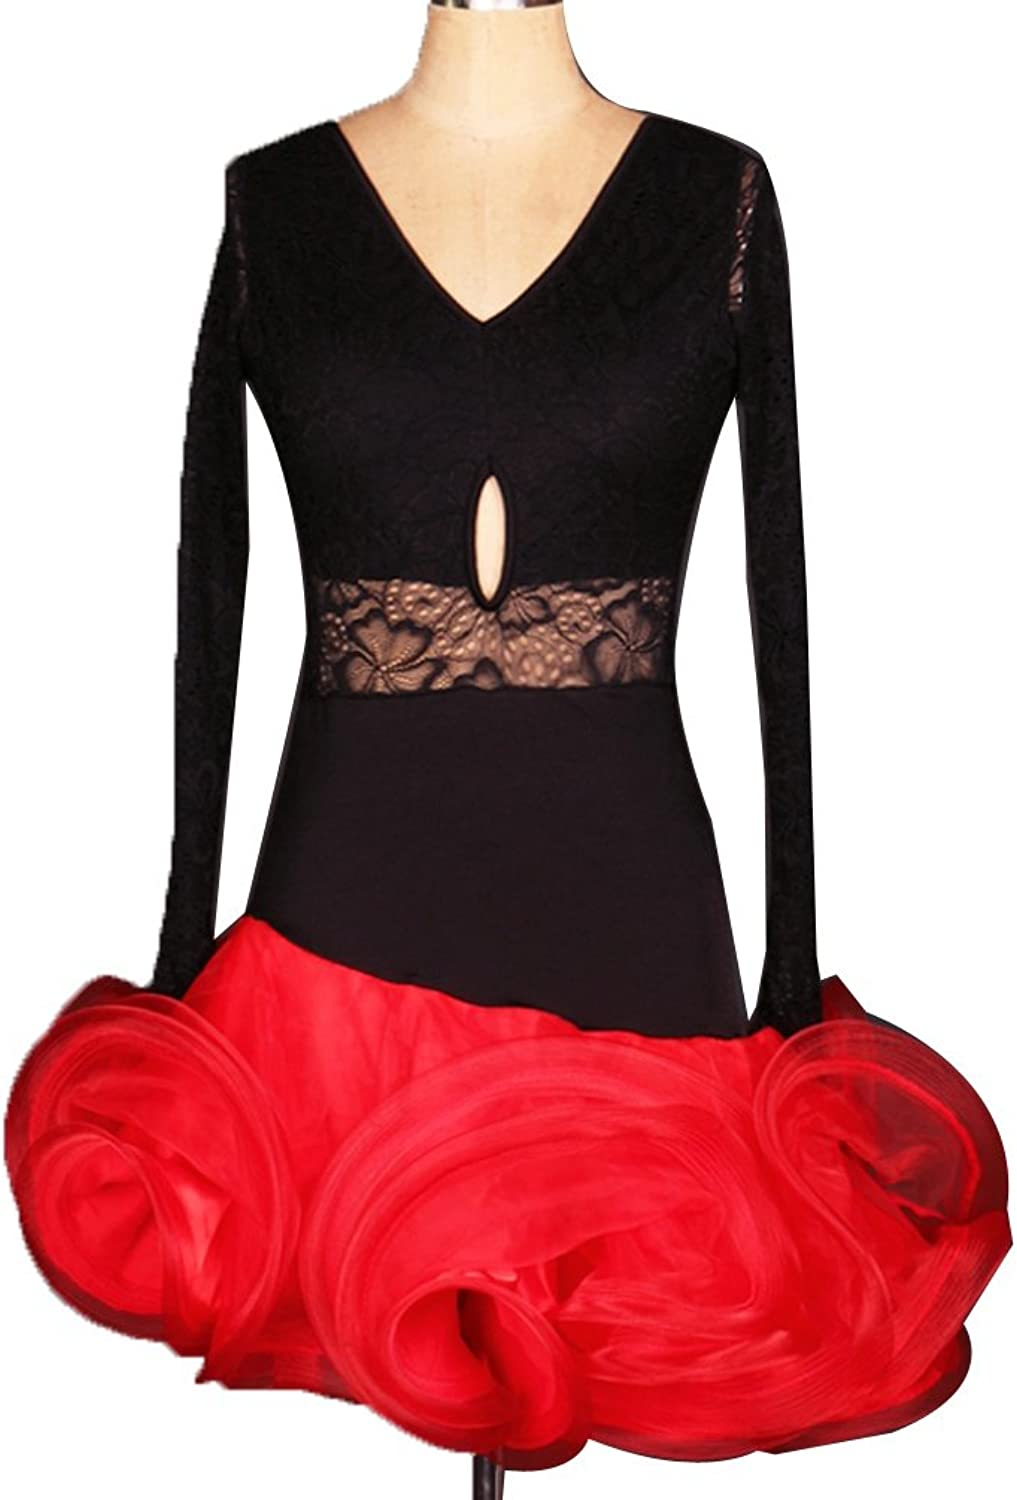 WQWLF Lace Latin Dance Costume For Women V-neck Performance Dancing Outfit Hollow Perspective Back Professional Latin Competition Suit